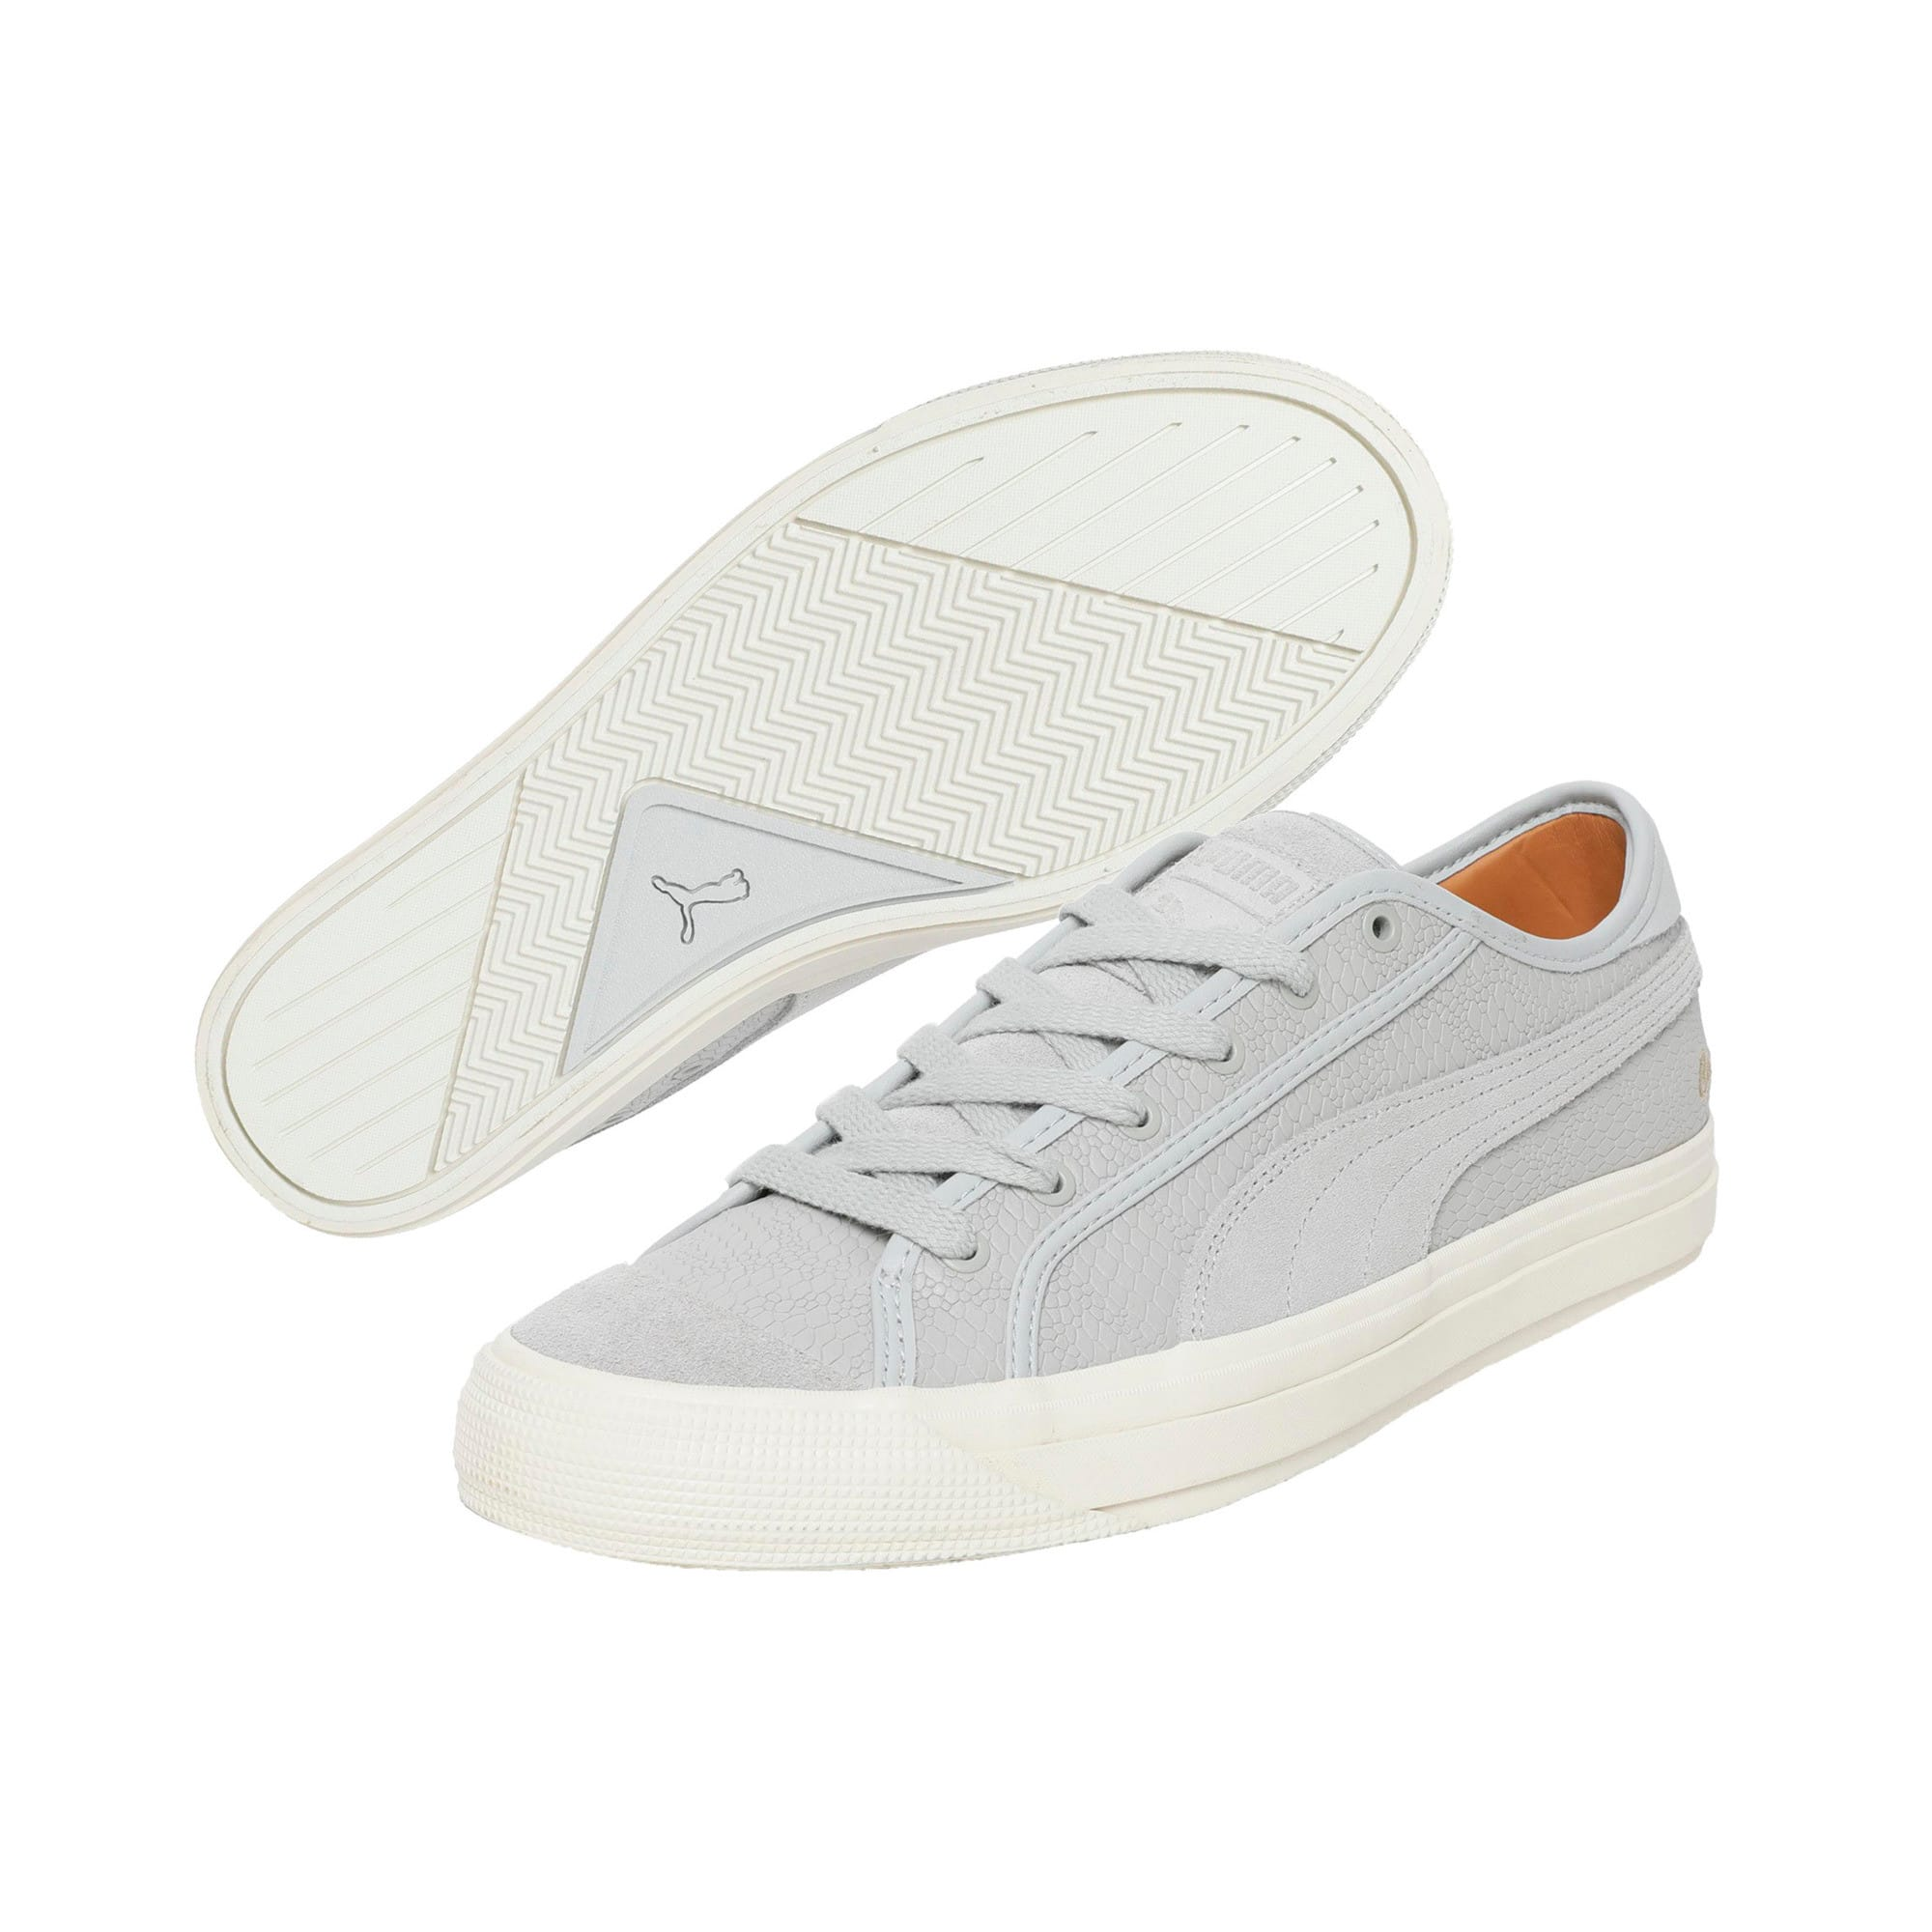 Thumbnail 2 of Capri Sneakers, GryViolt-GryViolet-WhisprWht, medium-IND